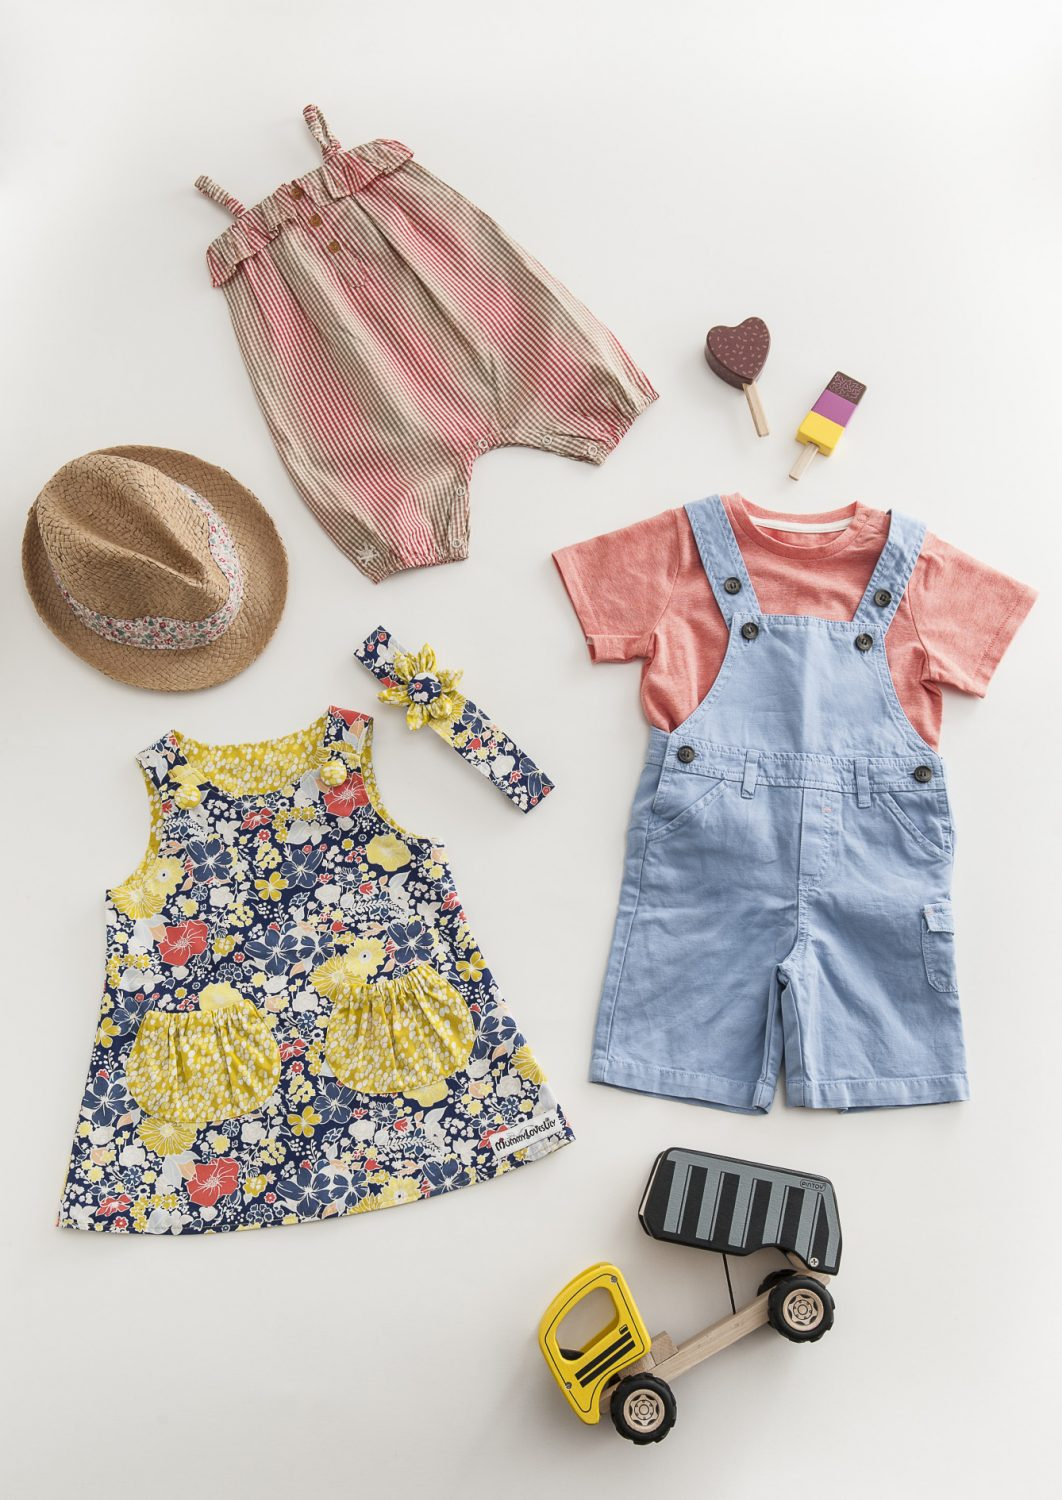 No Added Sugar jumpsuit, £34.95, Mini A Ture palm tree t-shirt, £22.95, Tartine et Chocolat dungarees, £29.95, Kidella, Tenterden 01580 765021 www.kidella.co.uk; trilby sun hat, £22, Tatty Tess www.wealdenfairs.com/tattytess; electric & apple reversible dress & matching flower headband, £40, MummyLovesLily www.wealdenfairs.com/mummyloveslily; set of 6 wooden ice-lollies, £15, wooden dumper truck, £30, Thumbelina, Tenterden 01580 763303 www.thumbelinatoys.co.uk